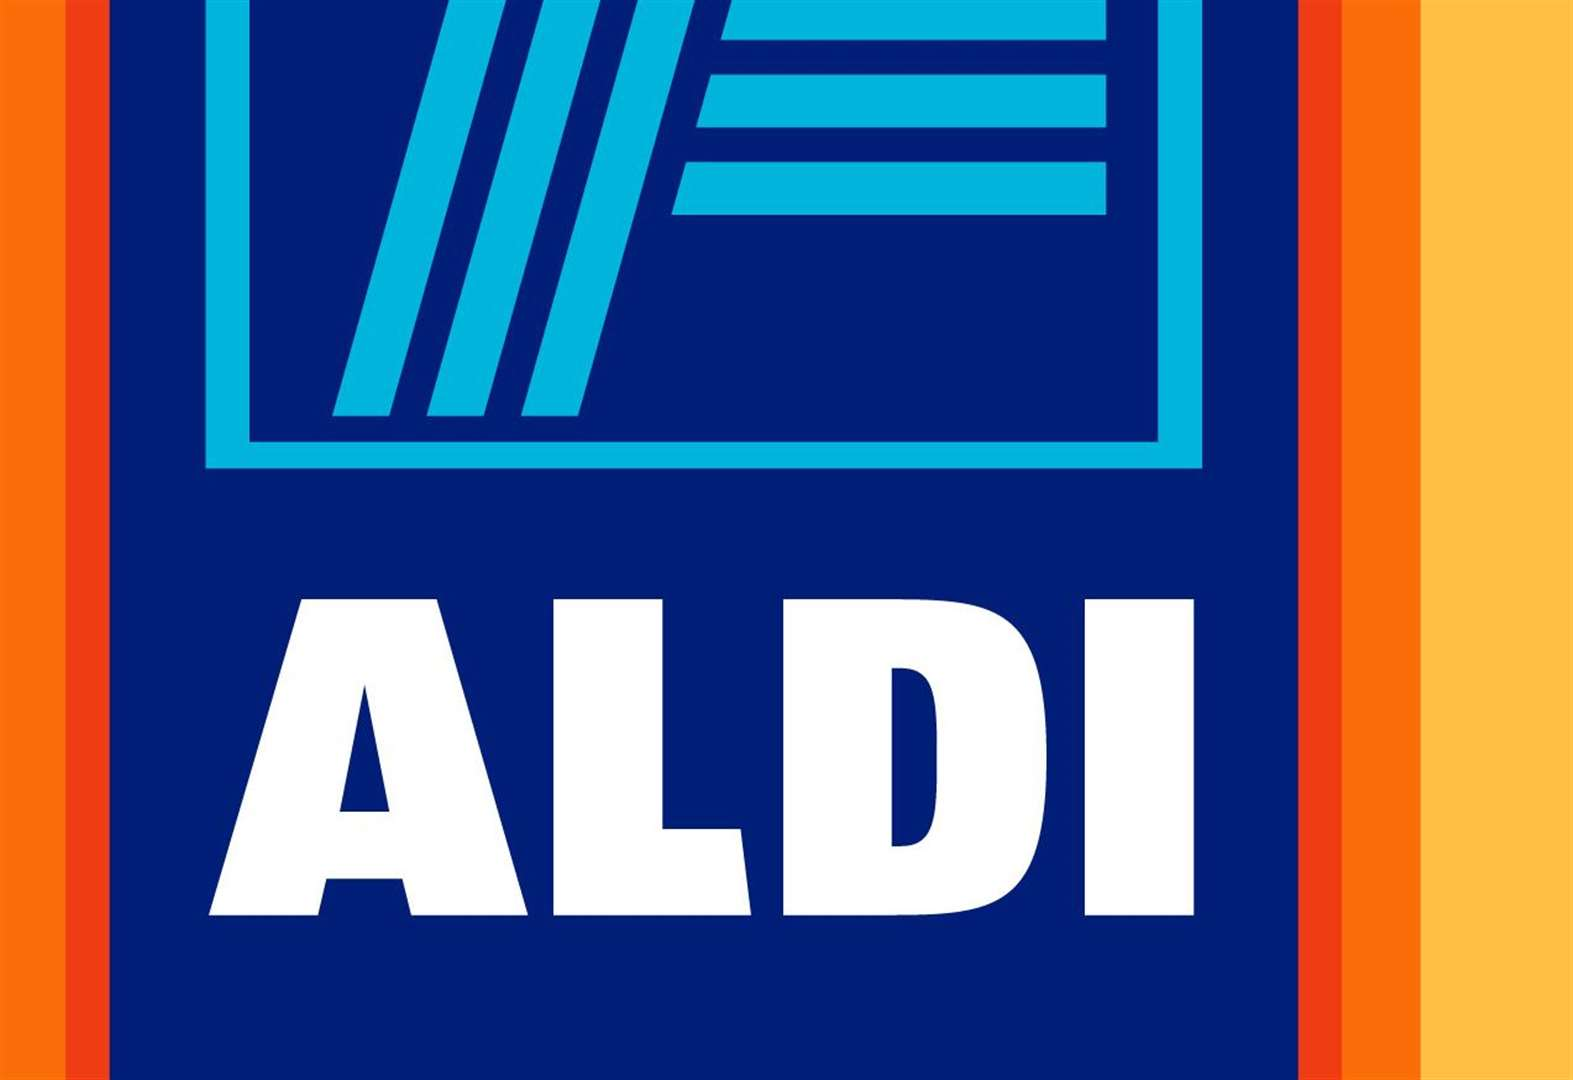 Get your hands on Aldi £50k